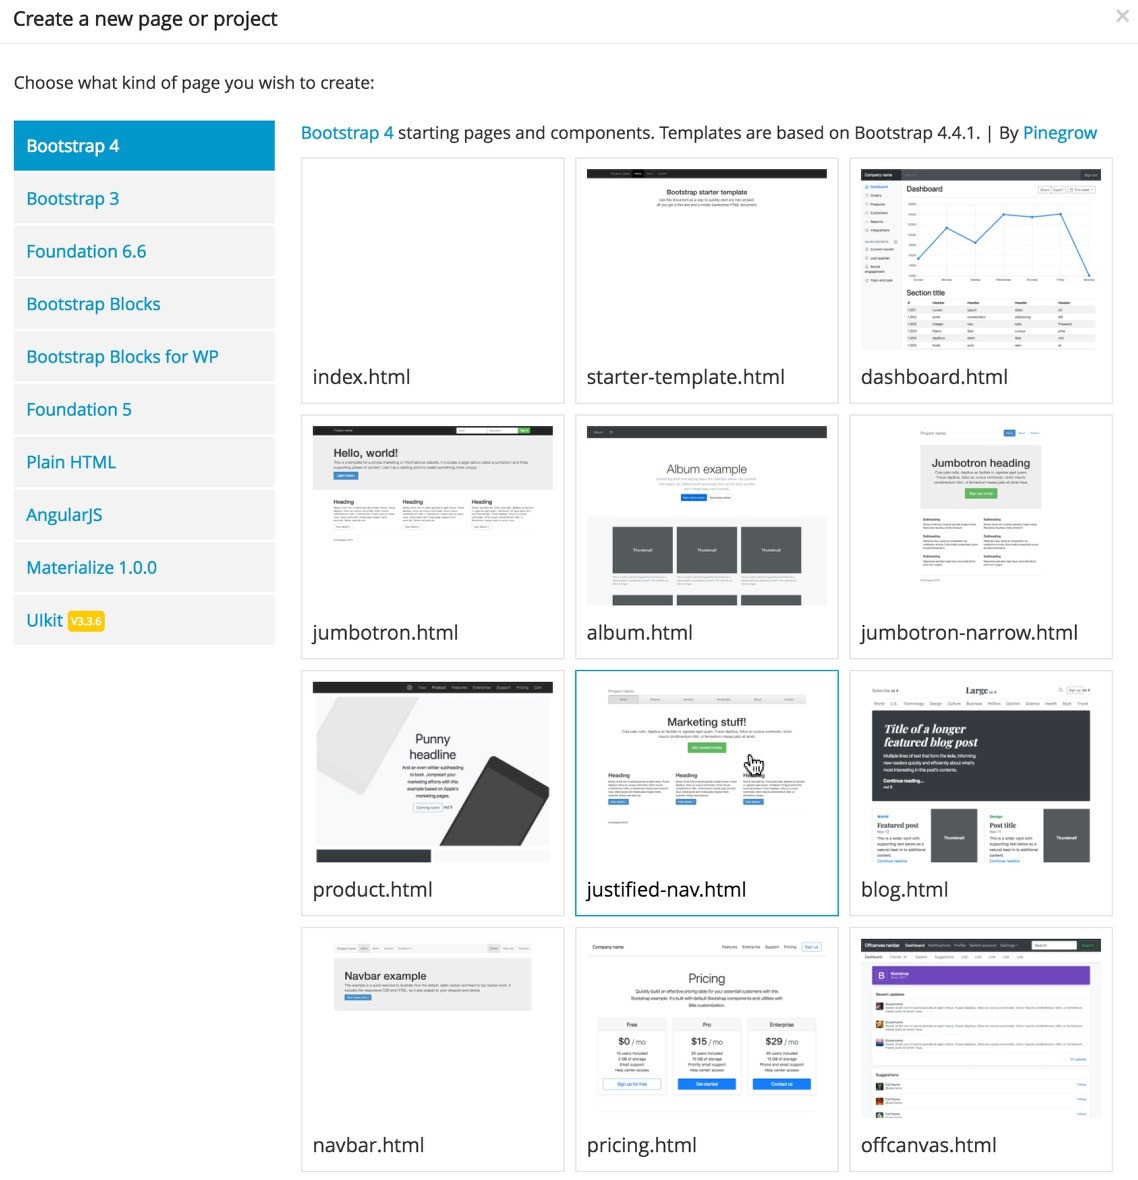 Screenshot of the Pinegrow Bootstrap 4 template selection